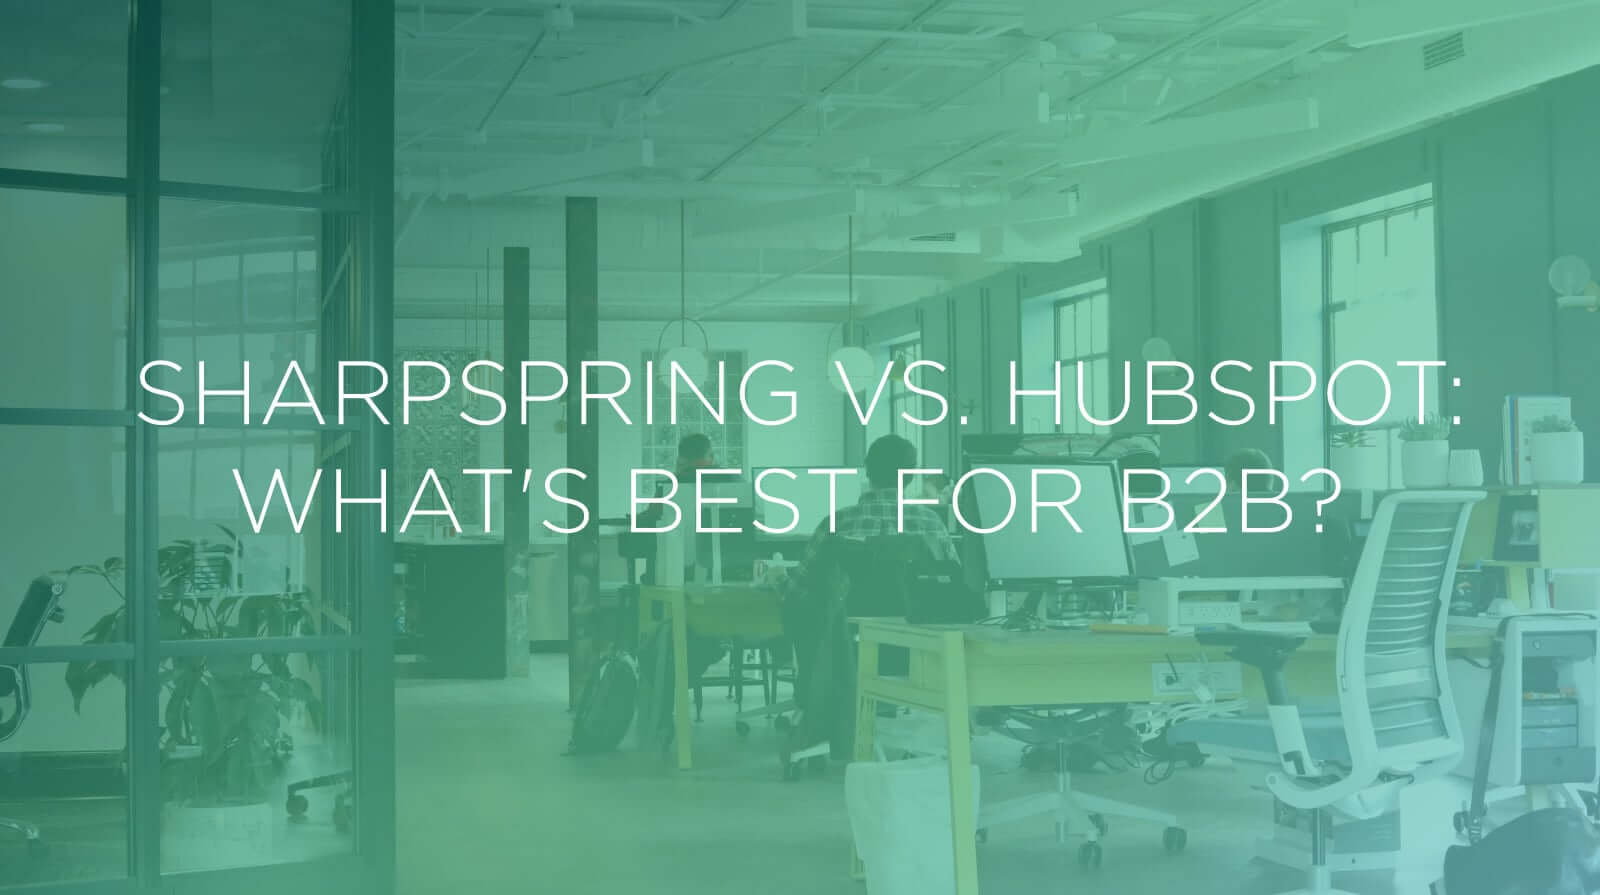 SharpSpring vs. HubSpot: What's Best for B2B